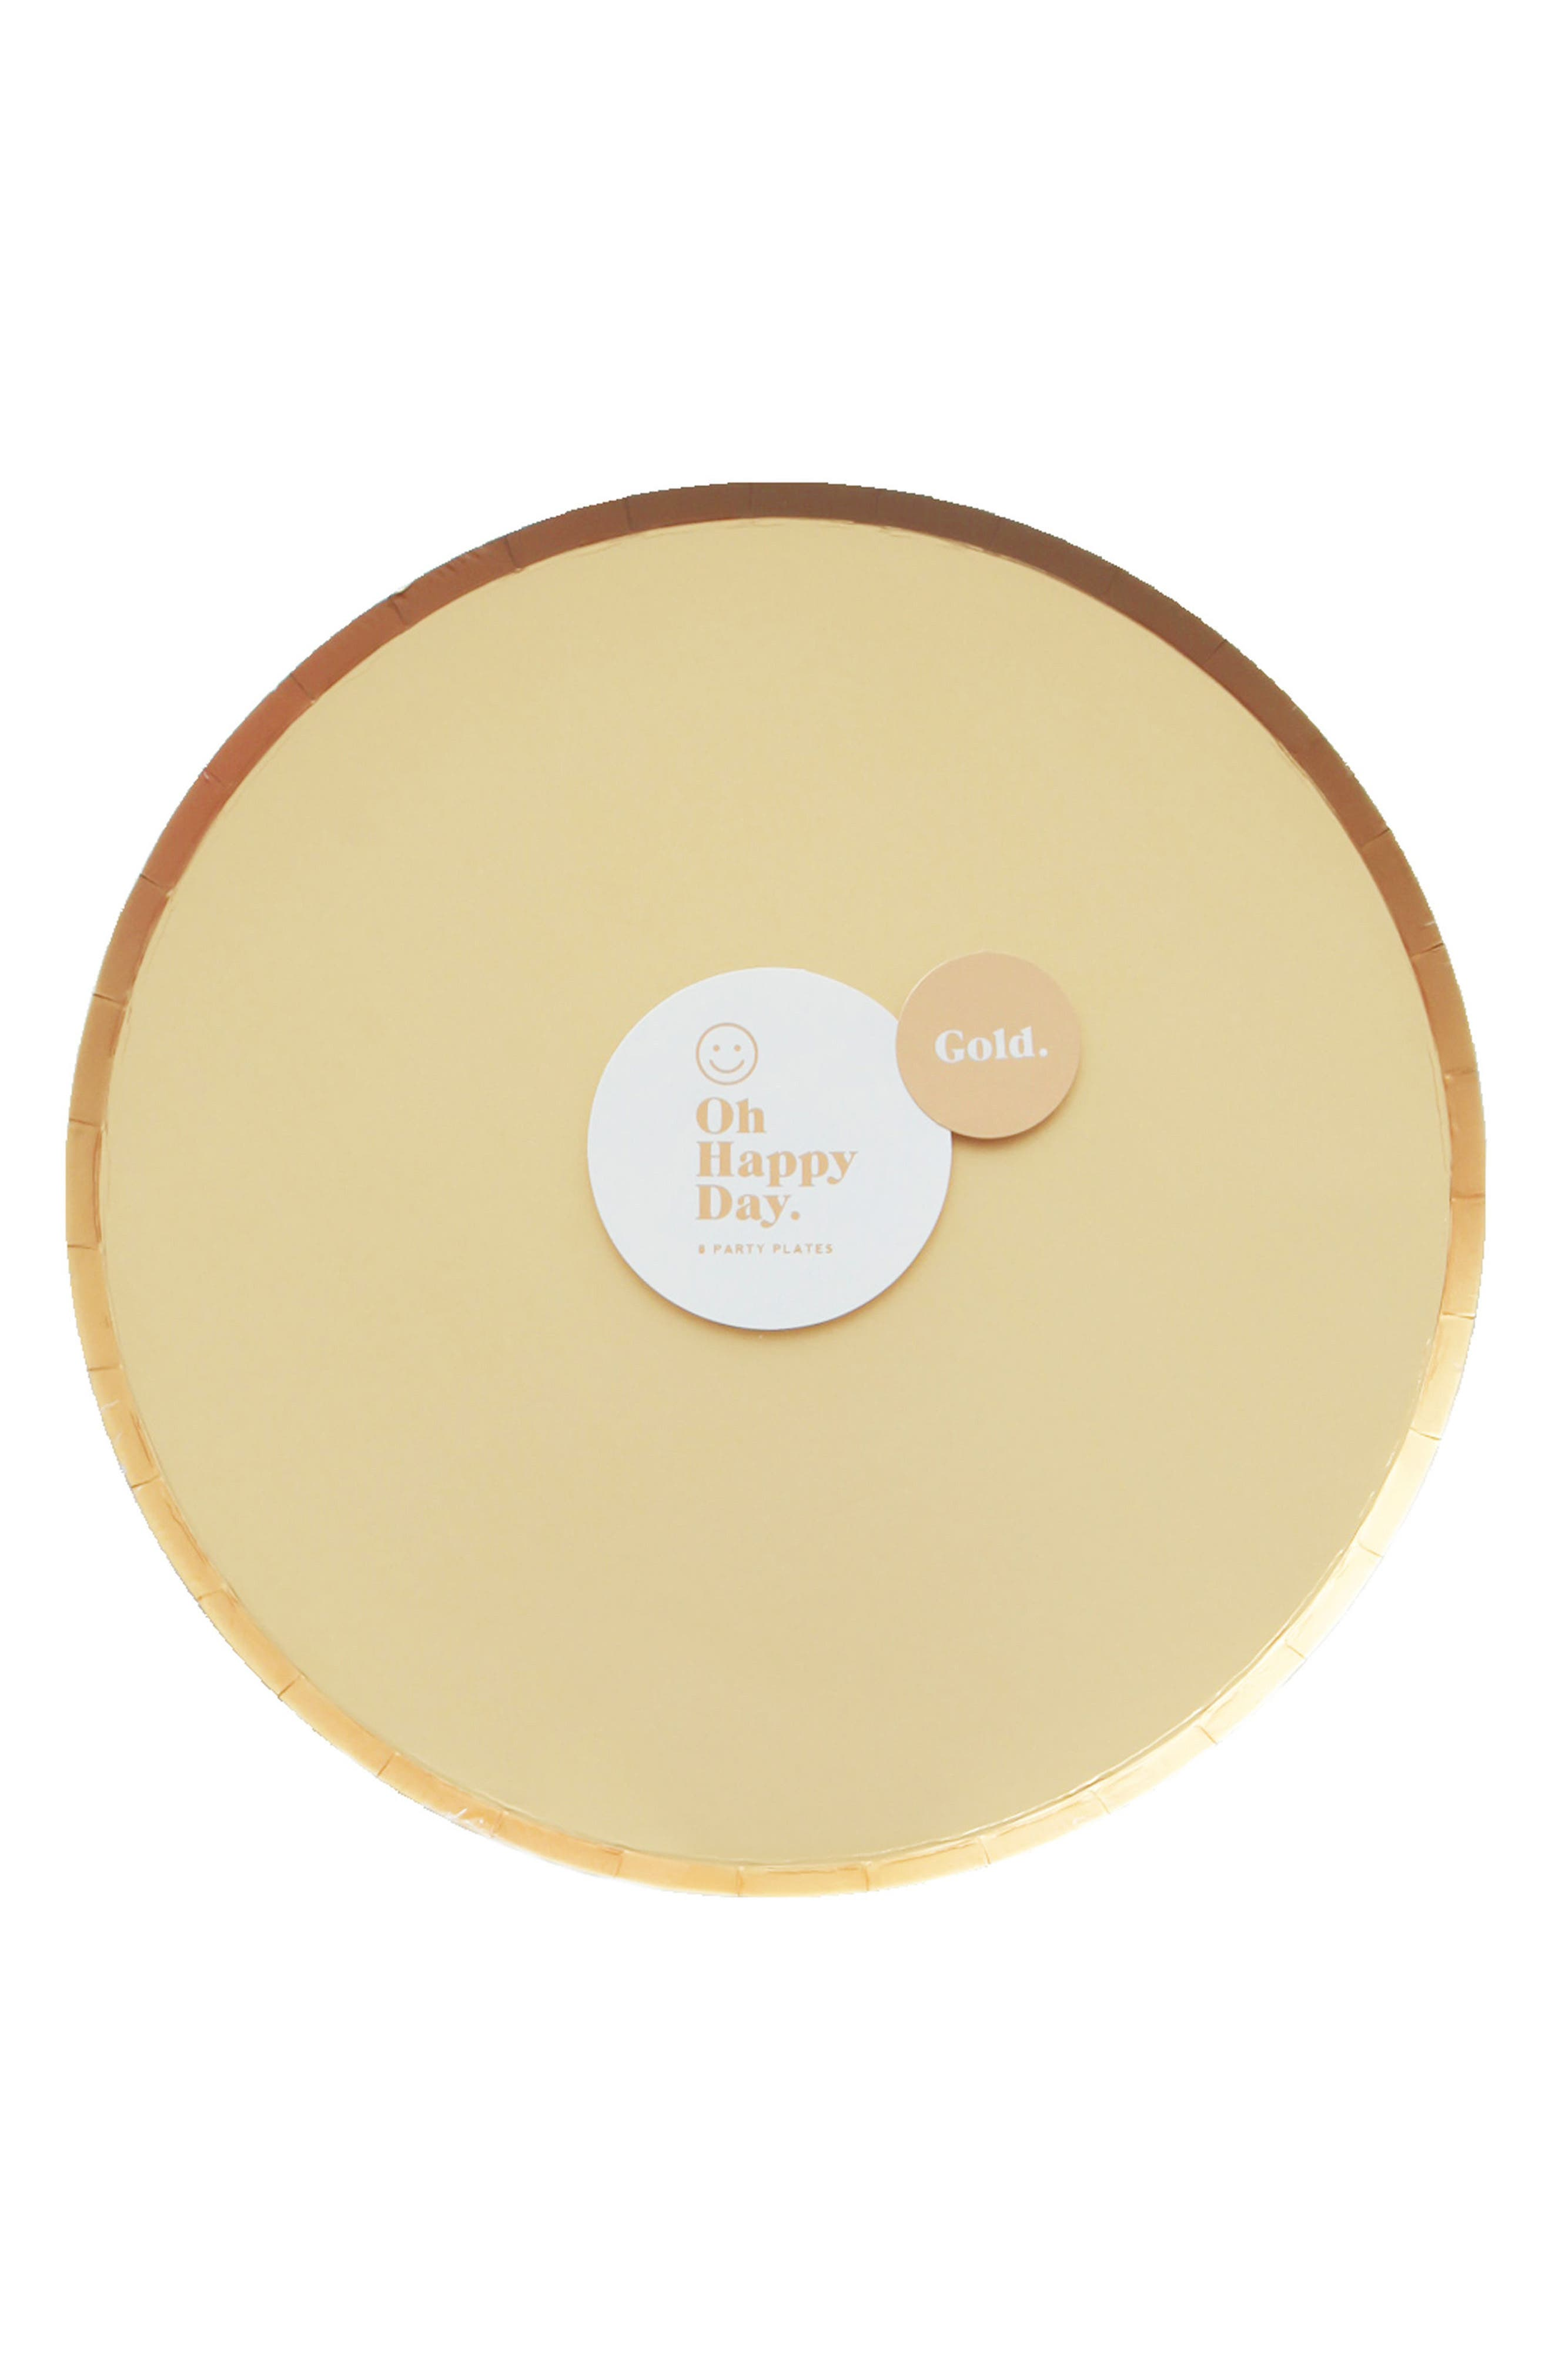 Oh Happy Day Set of 8 Gold 9-Inch Paper Party Plates